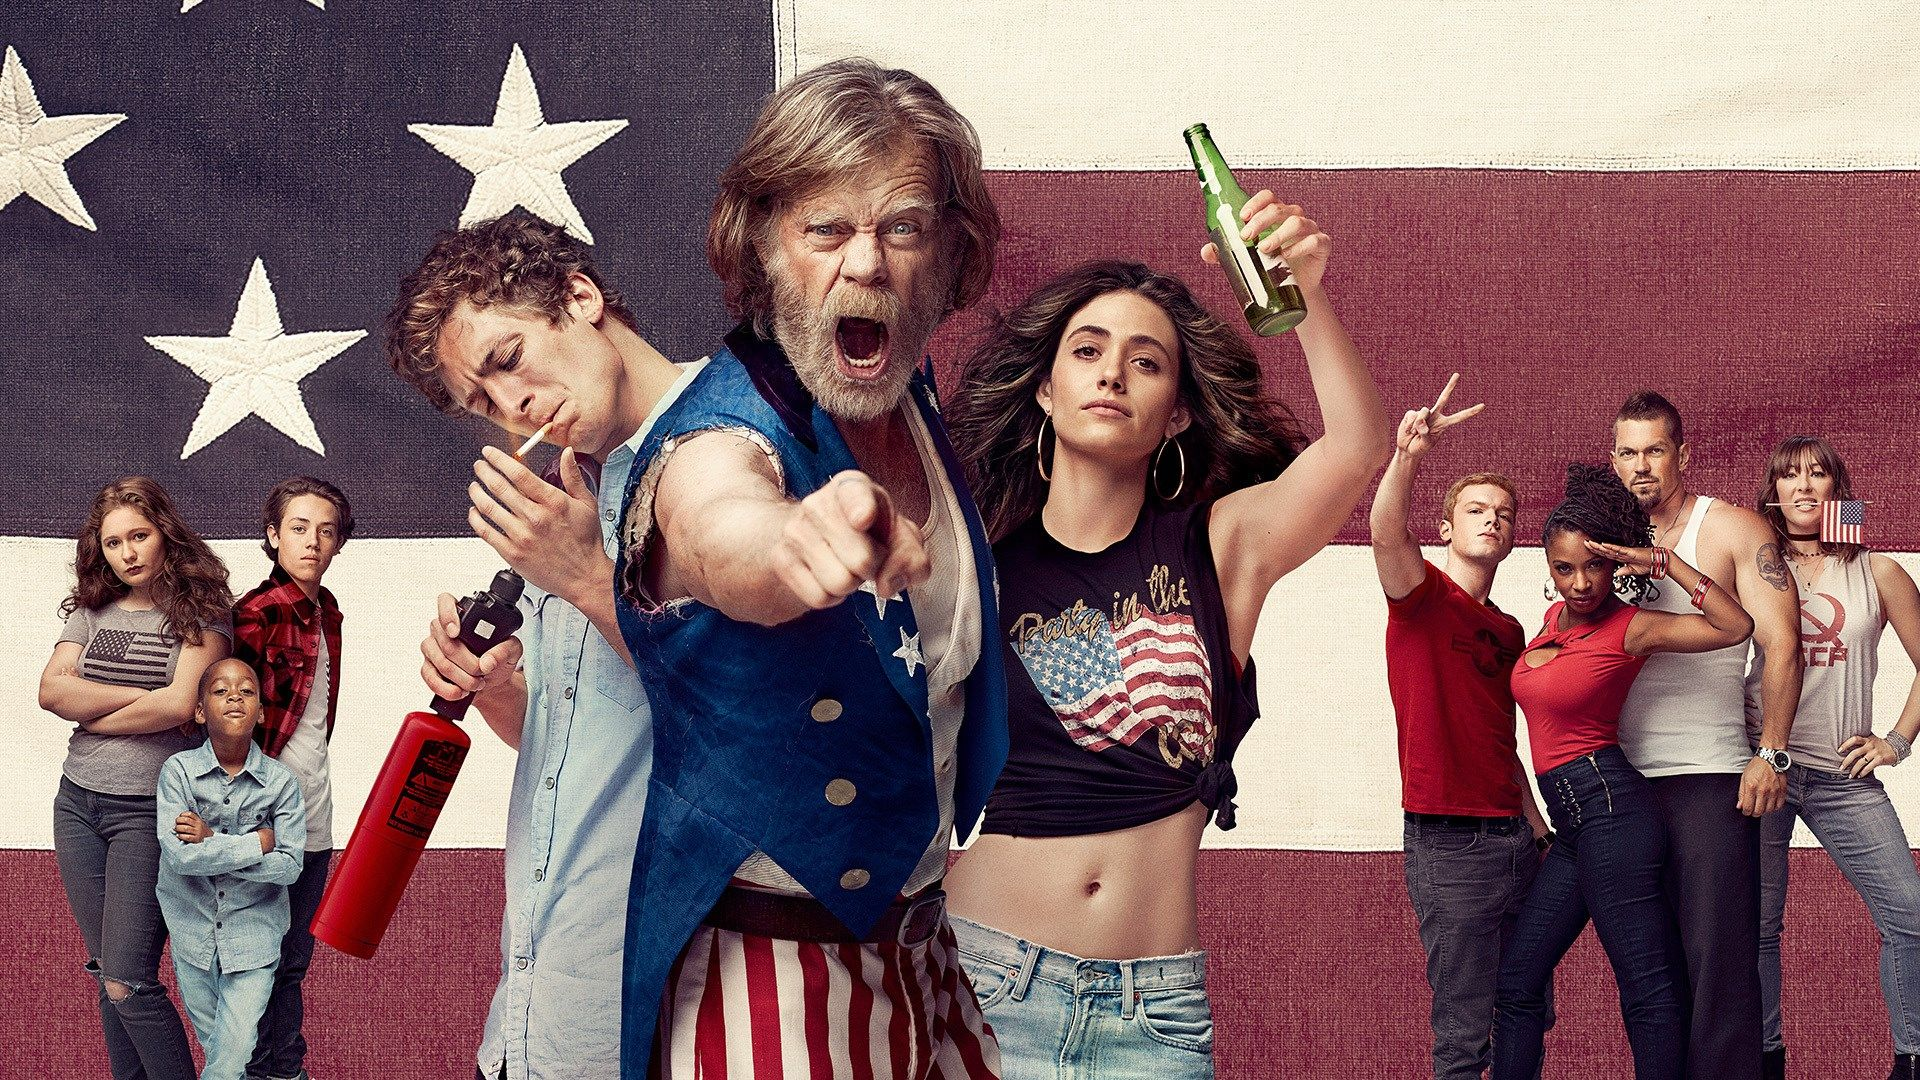 Shameless Season 11 Trailer, Release Date, Cast Details, Plot Spoilers and More